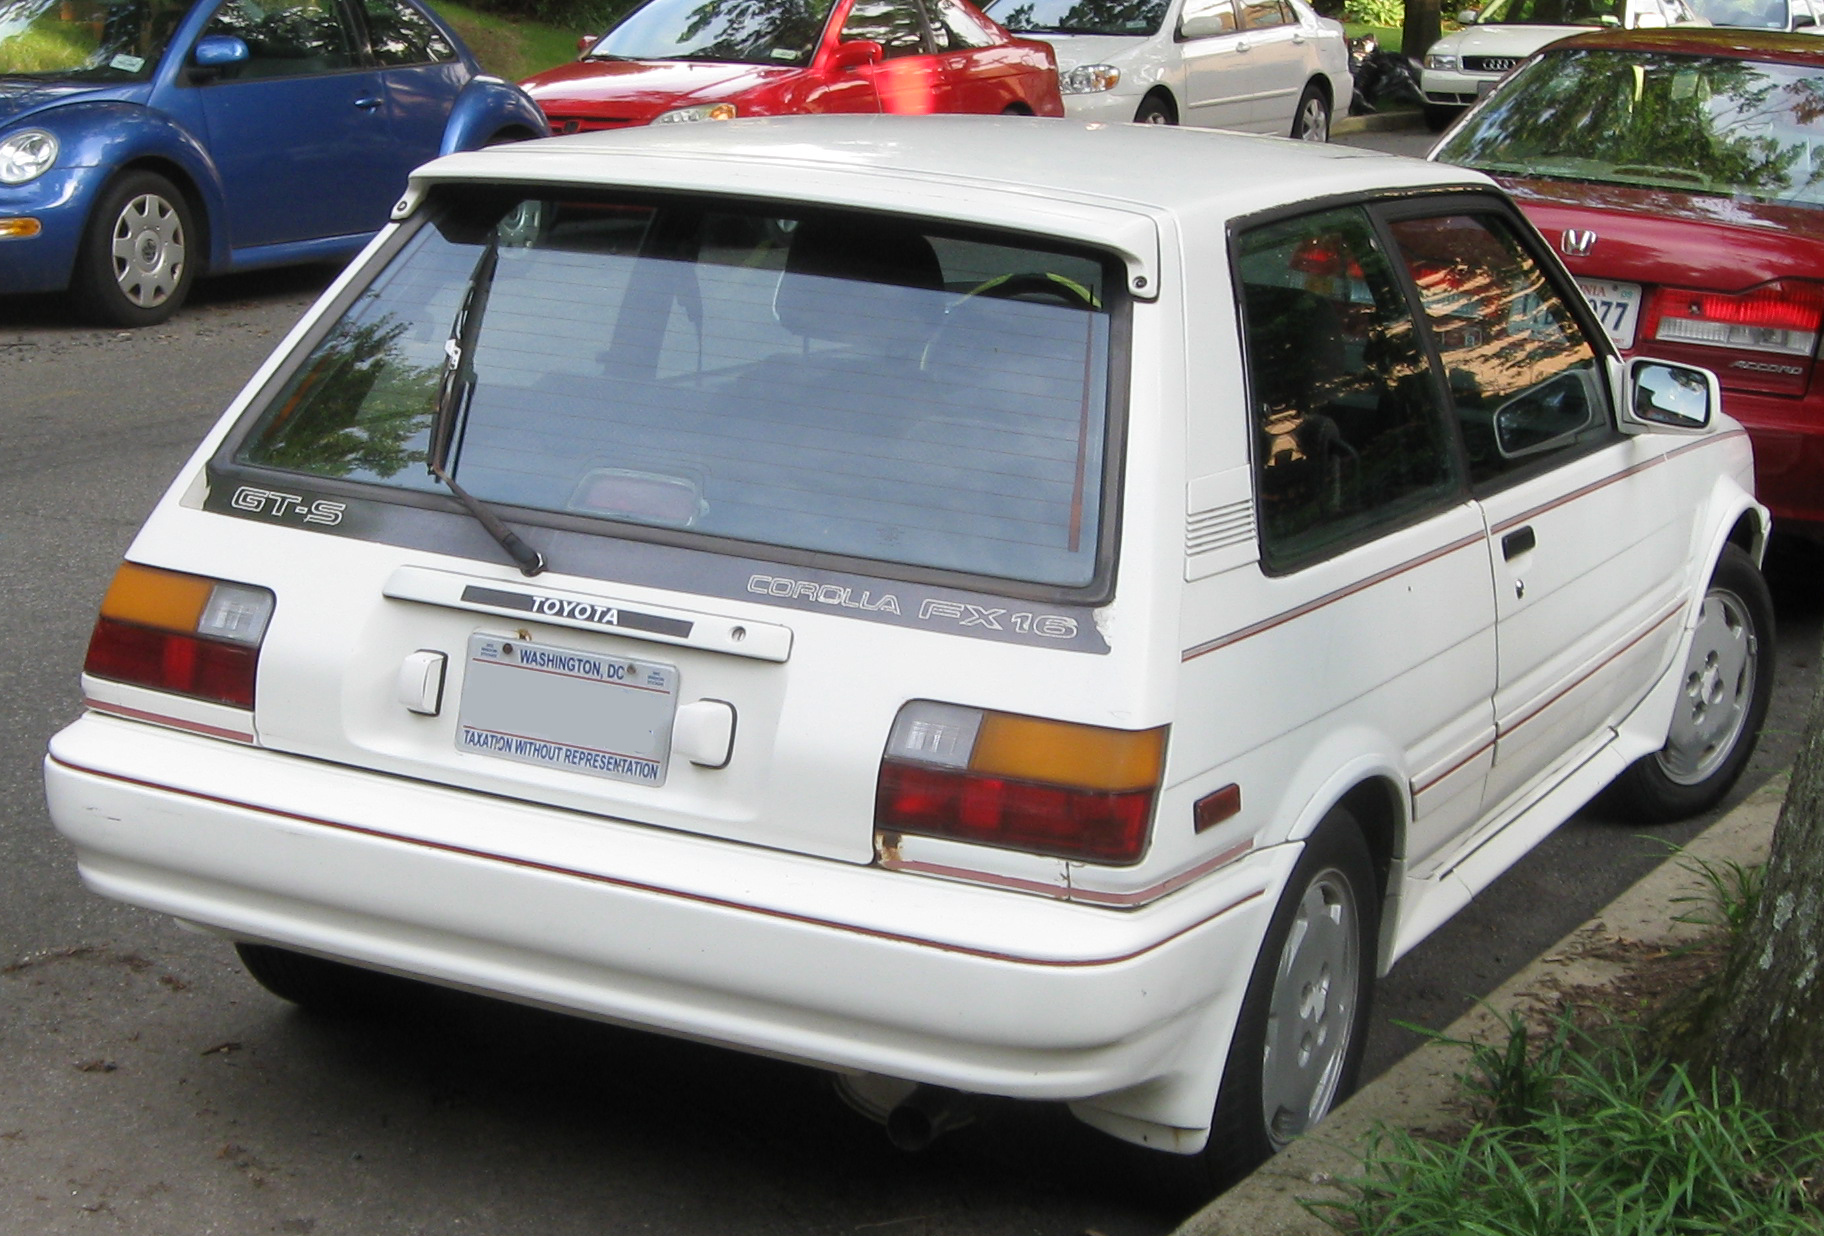 Toyota Corolla Fx Gts Silver Left Rear also Toyota Corolla E together with Fsj Wiringdiagr age additionally X moreover . on 1987 toyota corolla fx engine